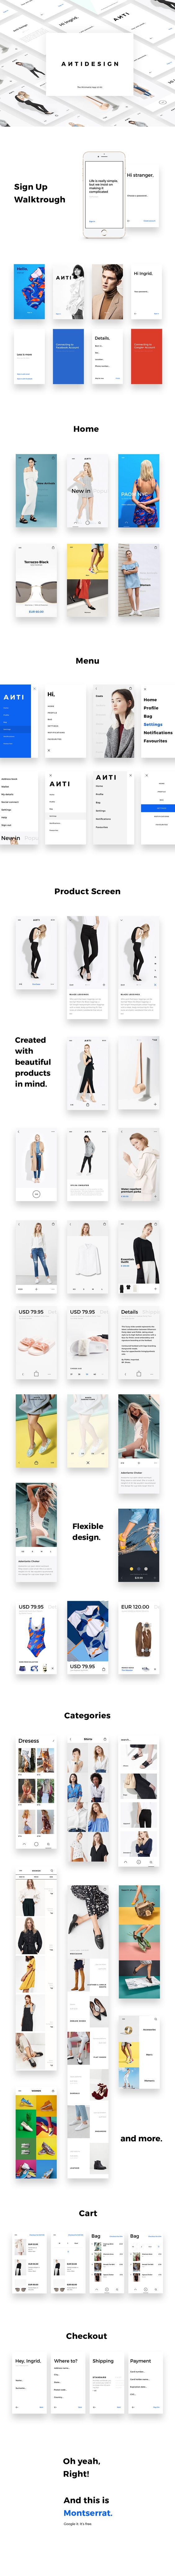 Antidesign the minimalist e commerce ui kit on behance